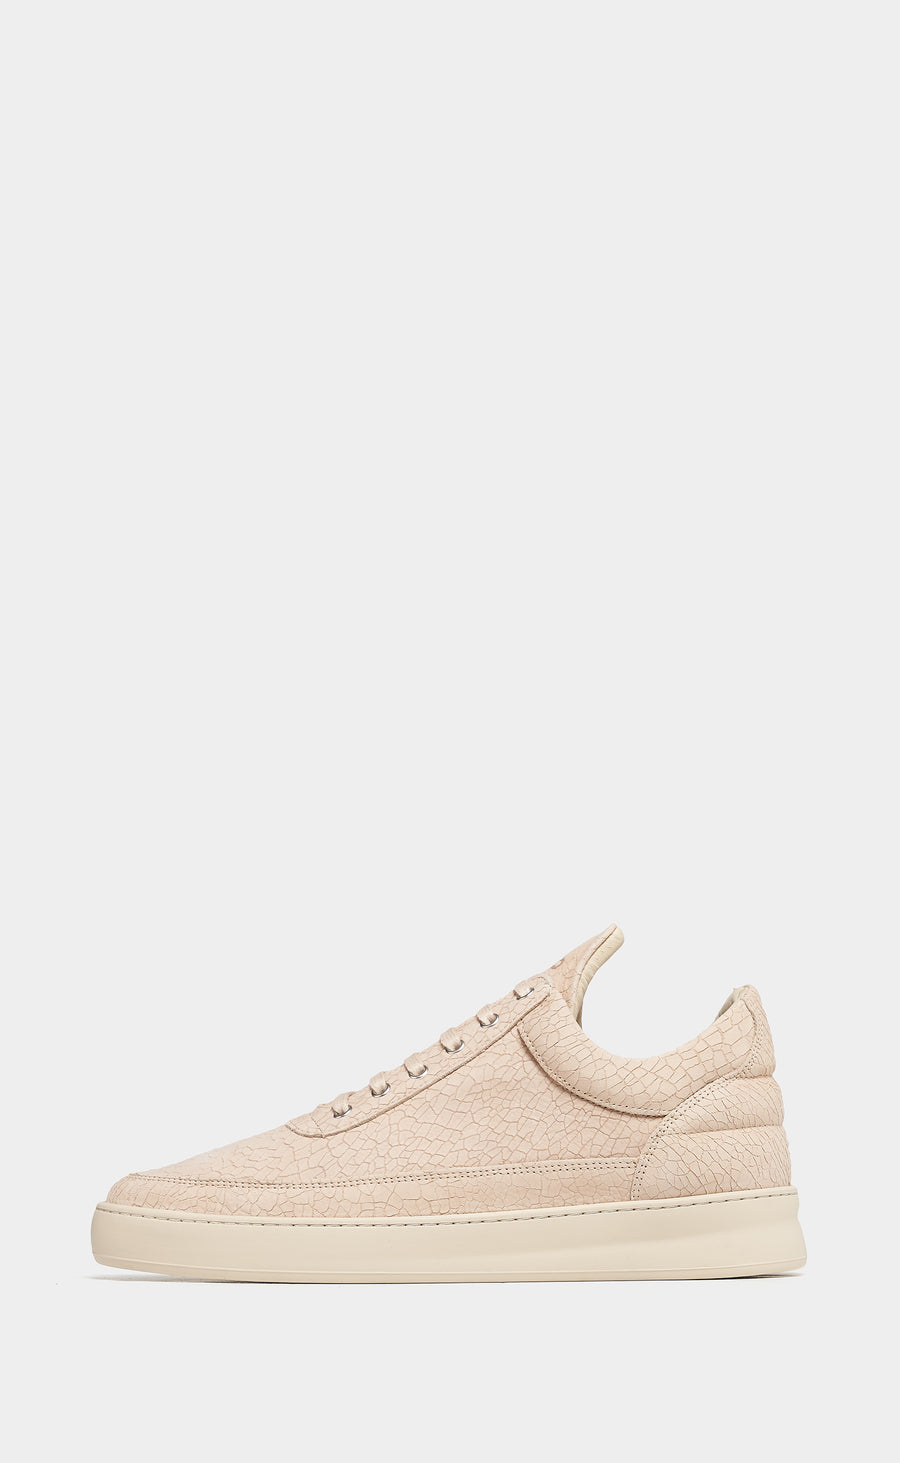 Low Top Plain Ceres Beige